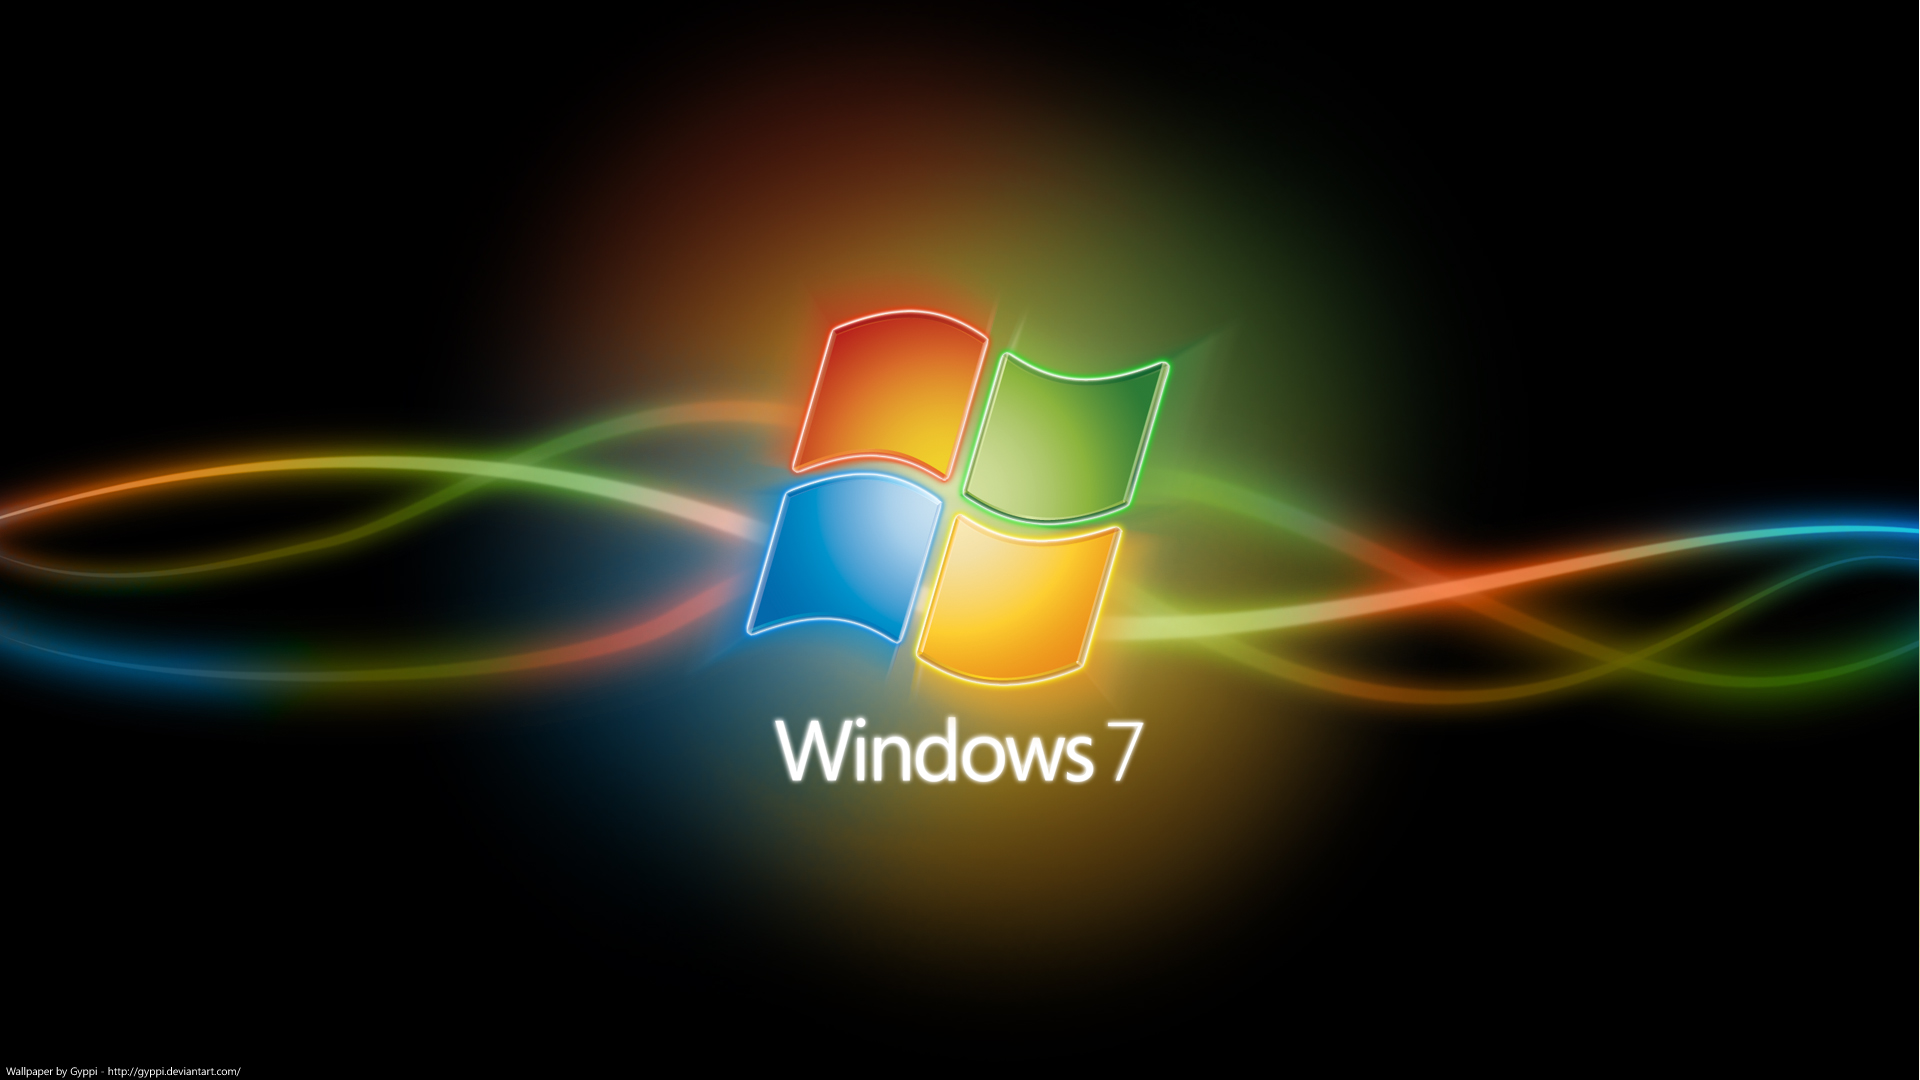 windows 7 wallpapers desktop win 7 background colors 1920x1080